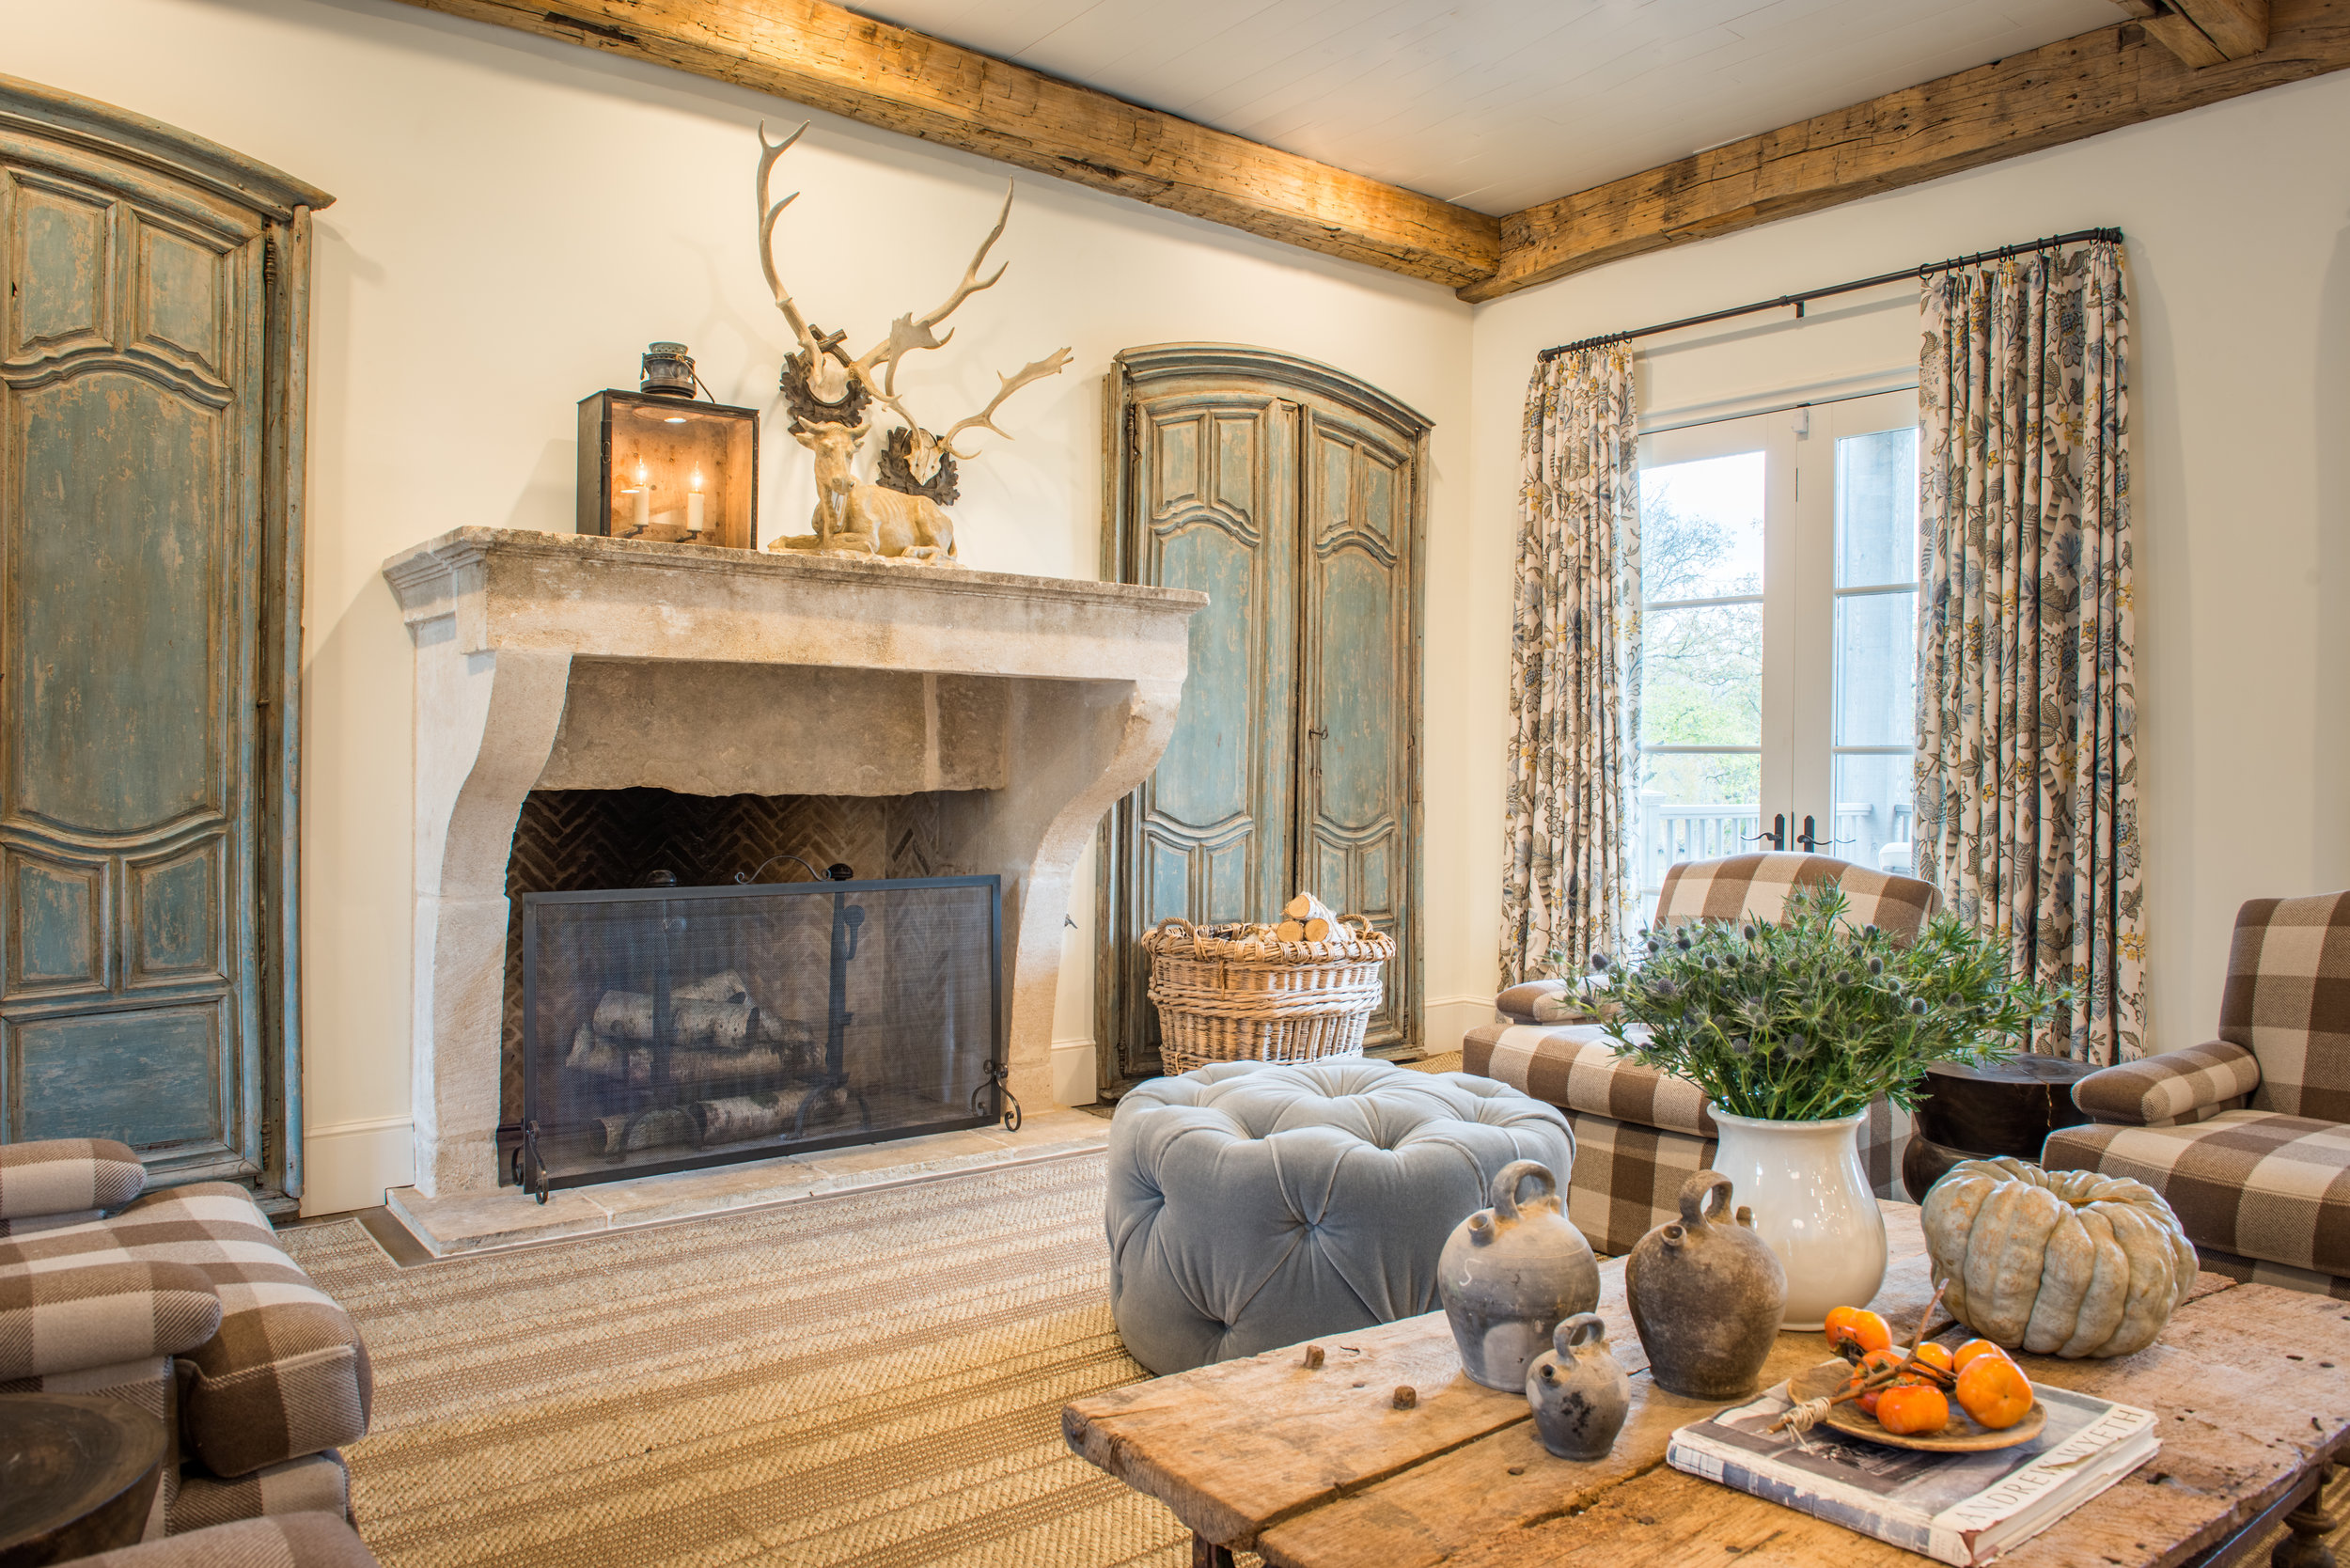 Private Residence |Farm, Era, Texas - +View Project